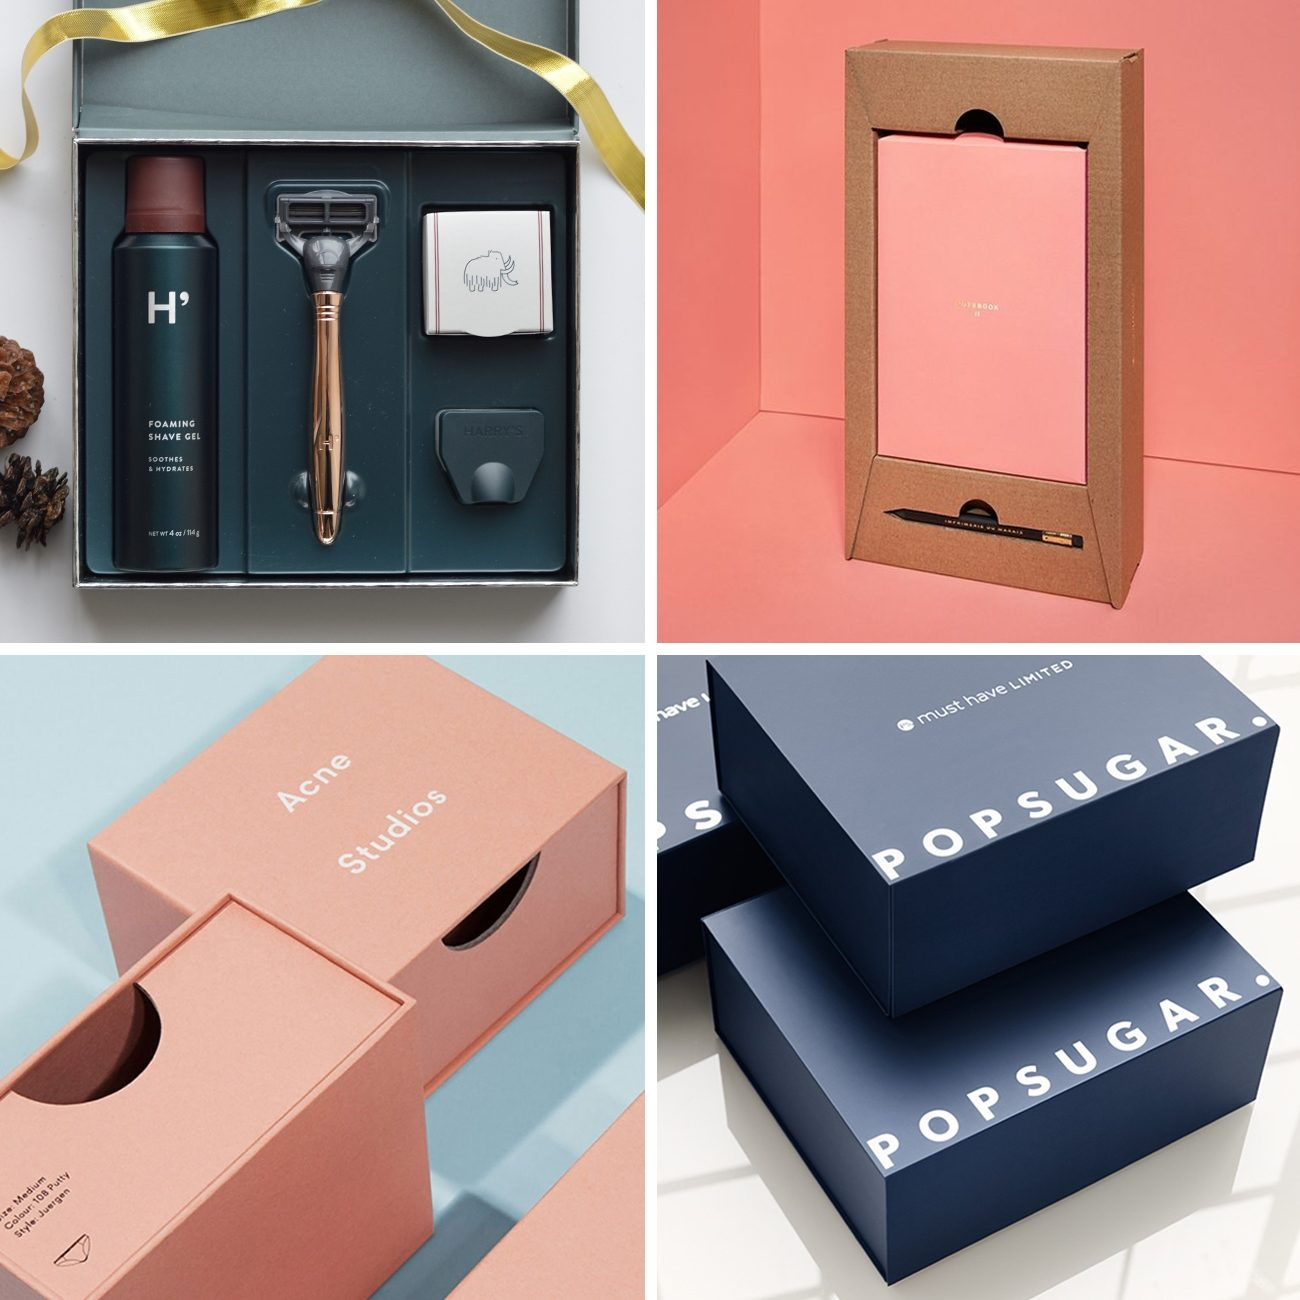 Photos via: Mary Rabun, —, —, Acne Studios, Popsugar 60 Ideas to Spruce Up Your Holiday Packaging Design